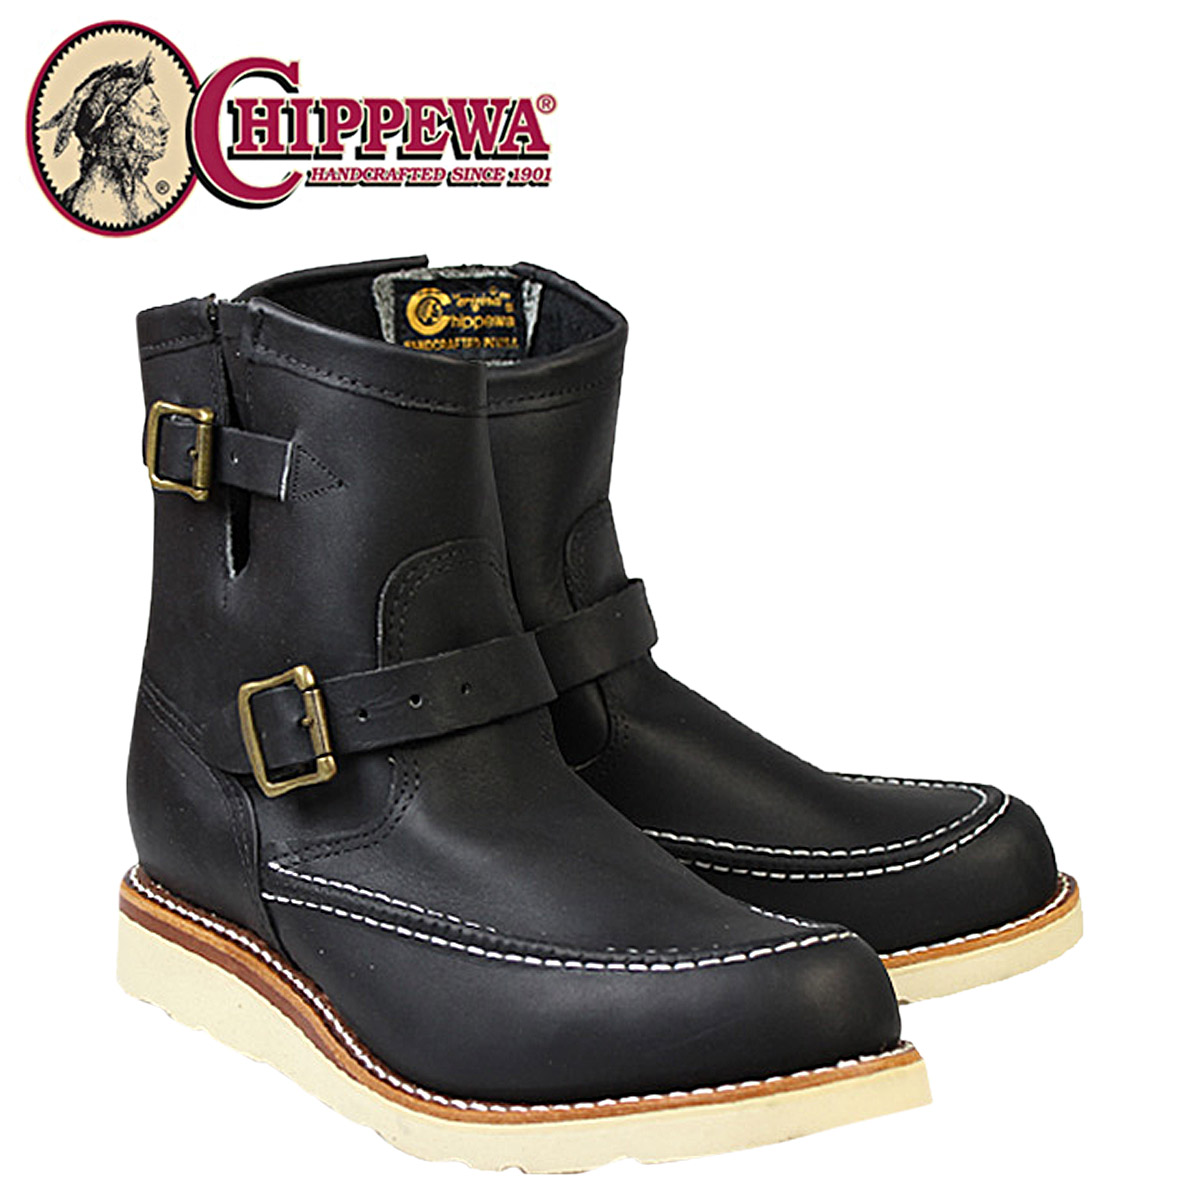 [SOLD OUT]CHIPPEWA chipewa 7英寸嘲笑二技術員長筒靴黑色97879 7INCH MOC TOE ENGINEER BOOTS 2懷斯皮革人]